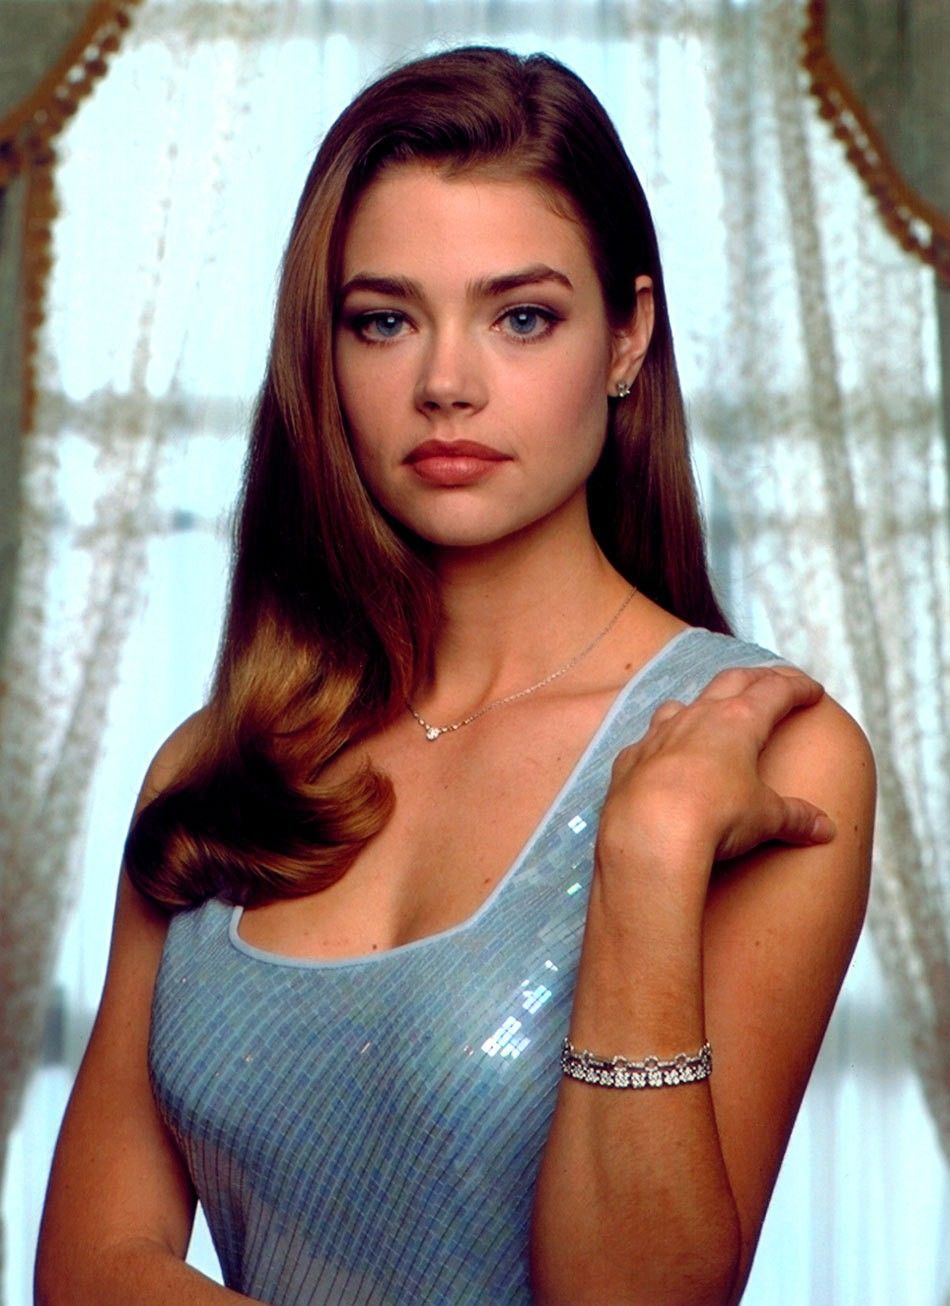 Cleavage Denise Richards naked (55 photo), Ass, Cleavage, Feet, underwear 2006